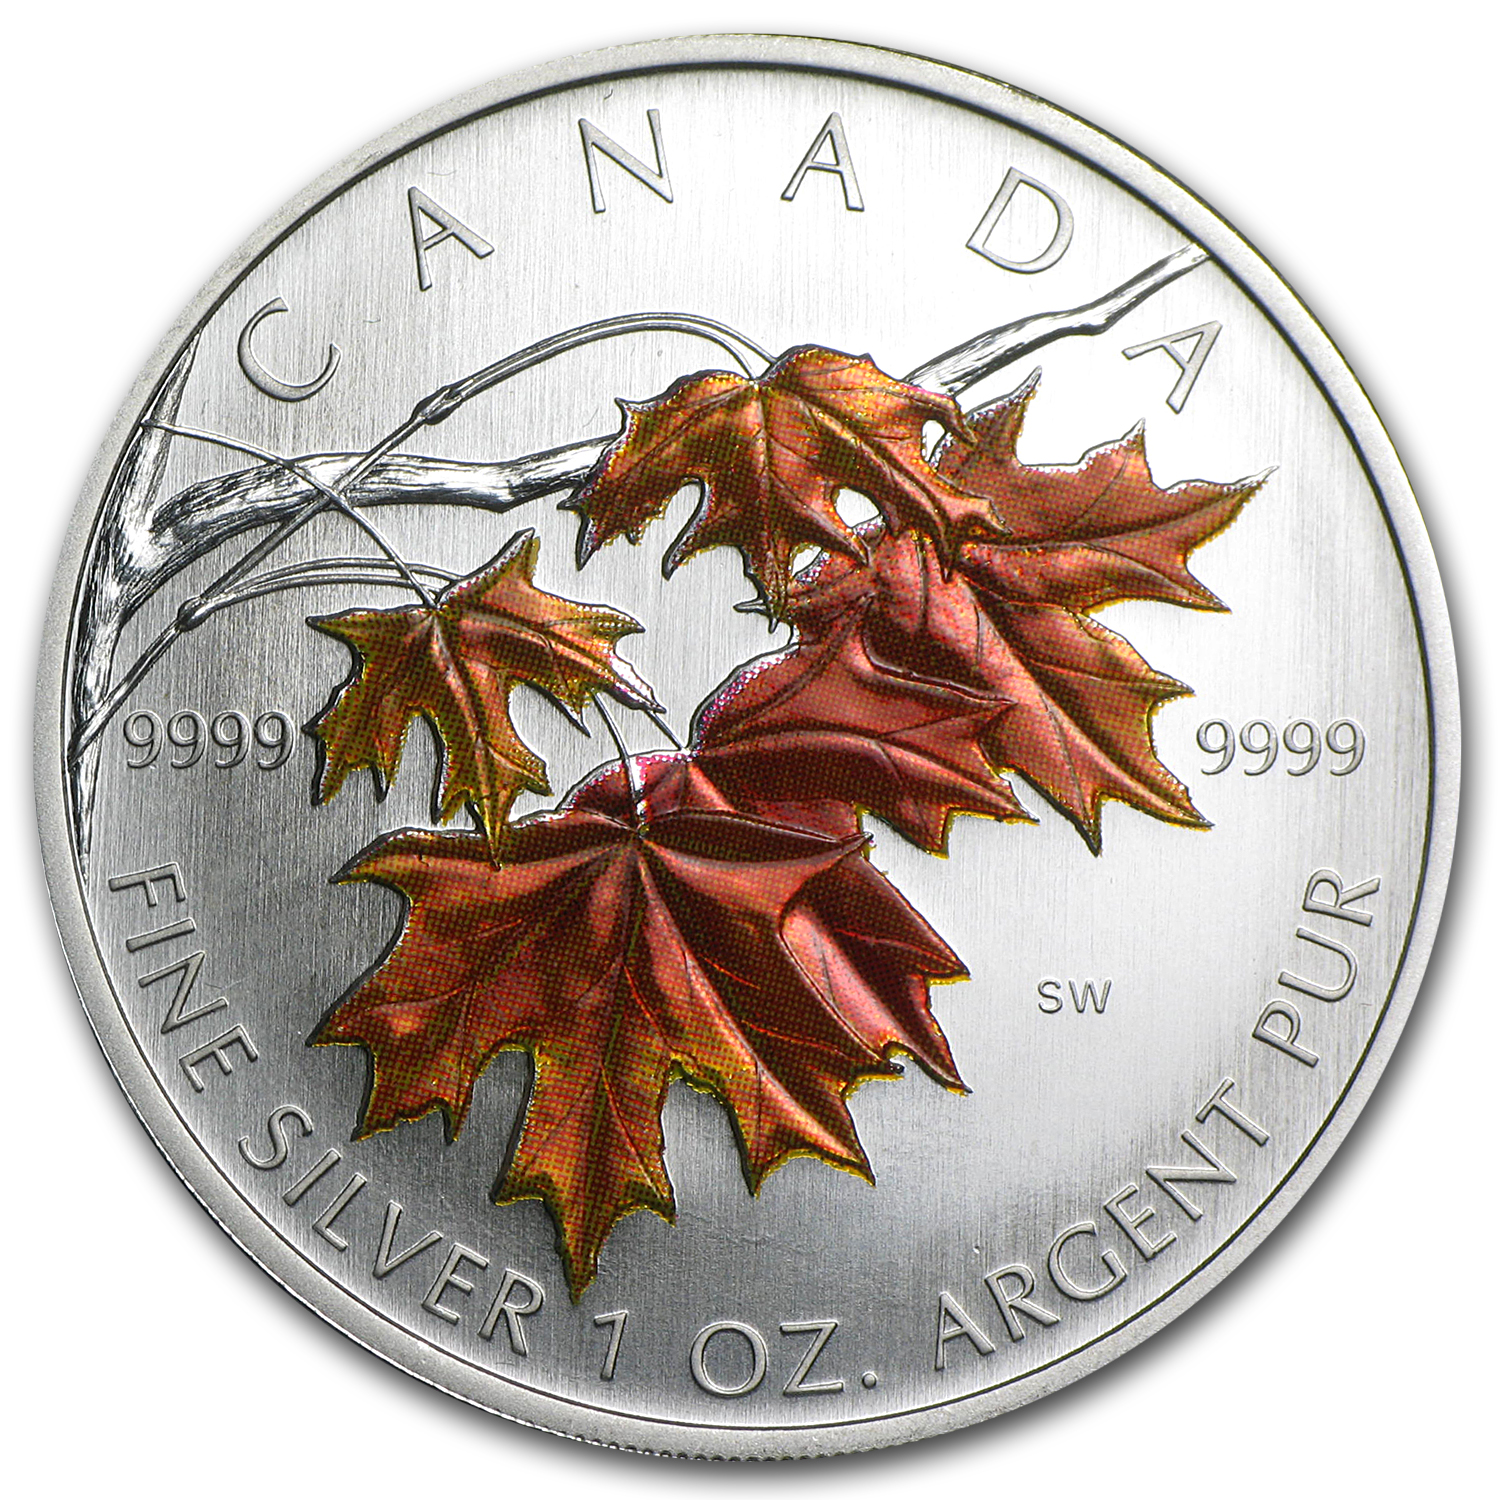 2007 1 oz Silver Canadian Maple Leaf (Sugar Maple, Coloured)